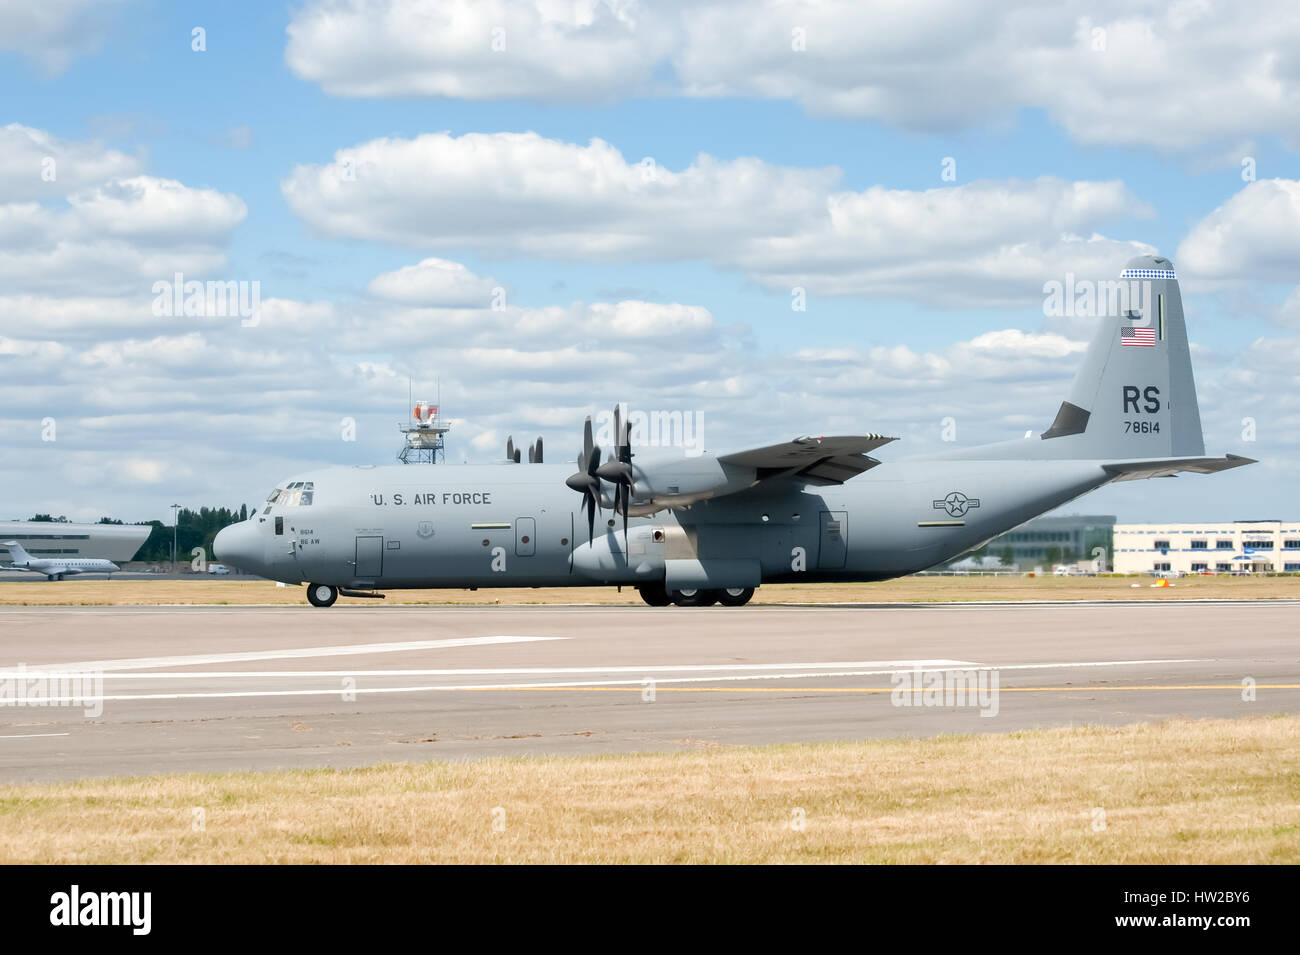 USAF C-130J cargo transporter taxiing before take-off at the Farnborough Airshow, UK - Stock Image